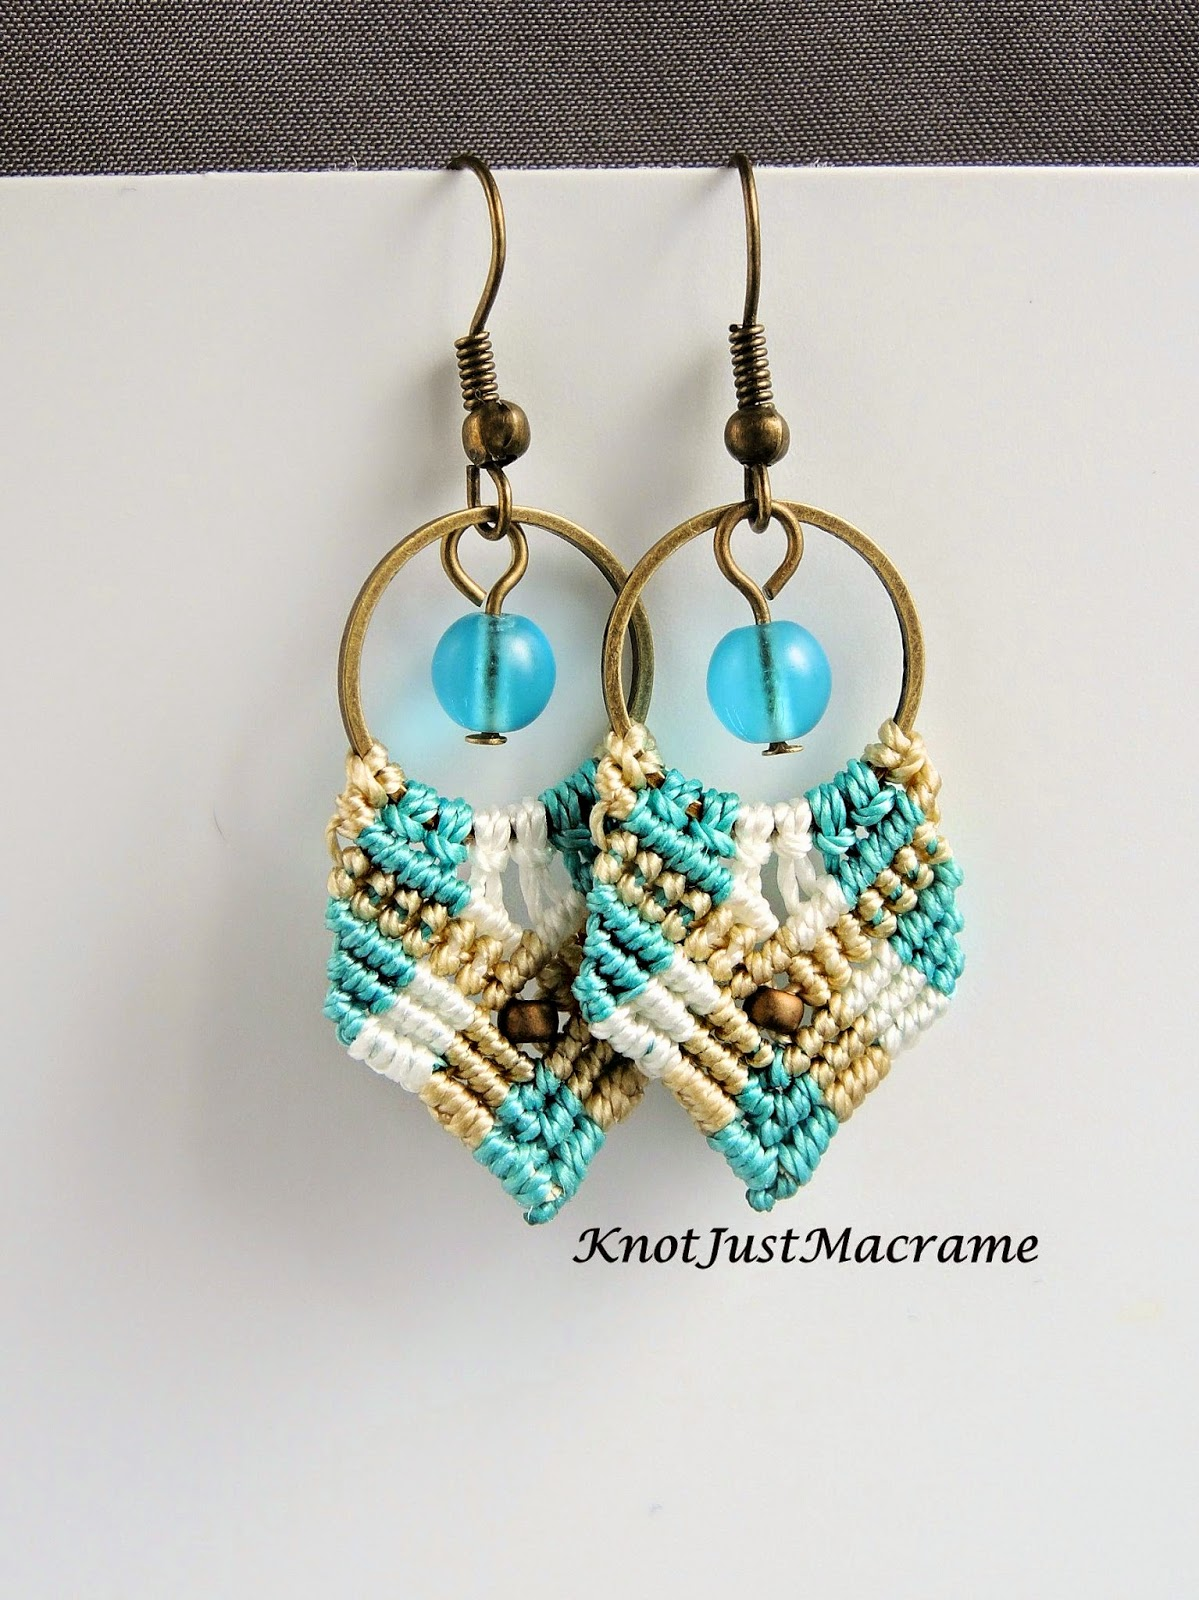 Short version of Gypsy micro macrame earrings with dangles